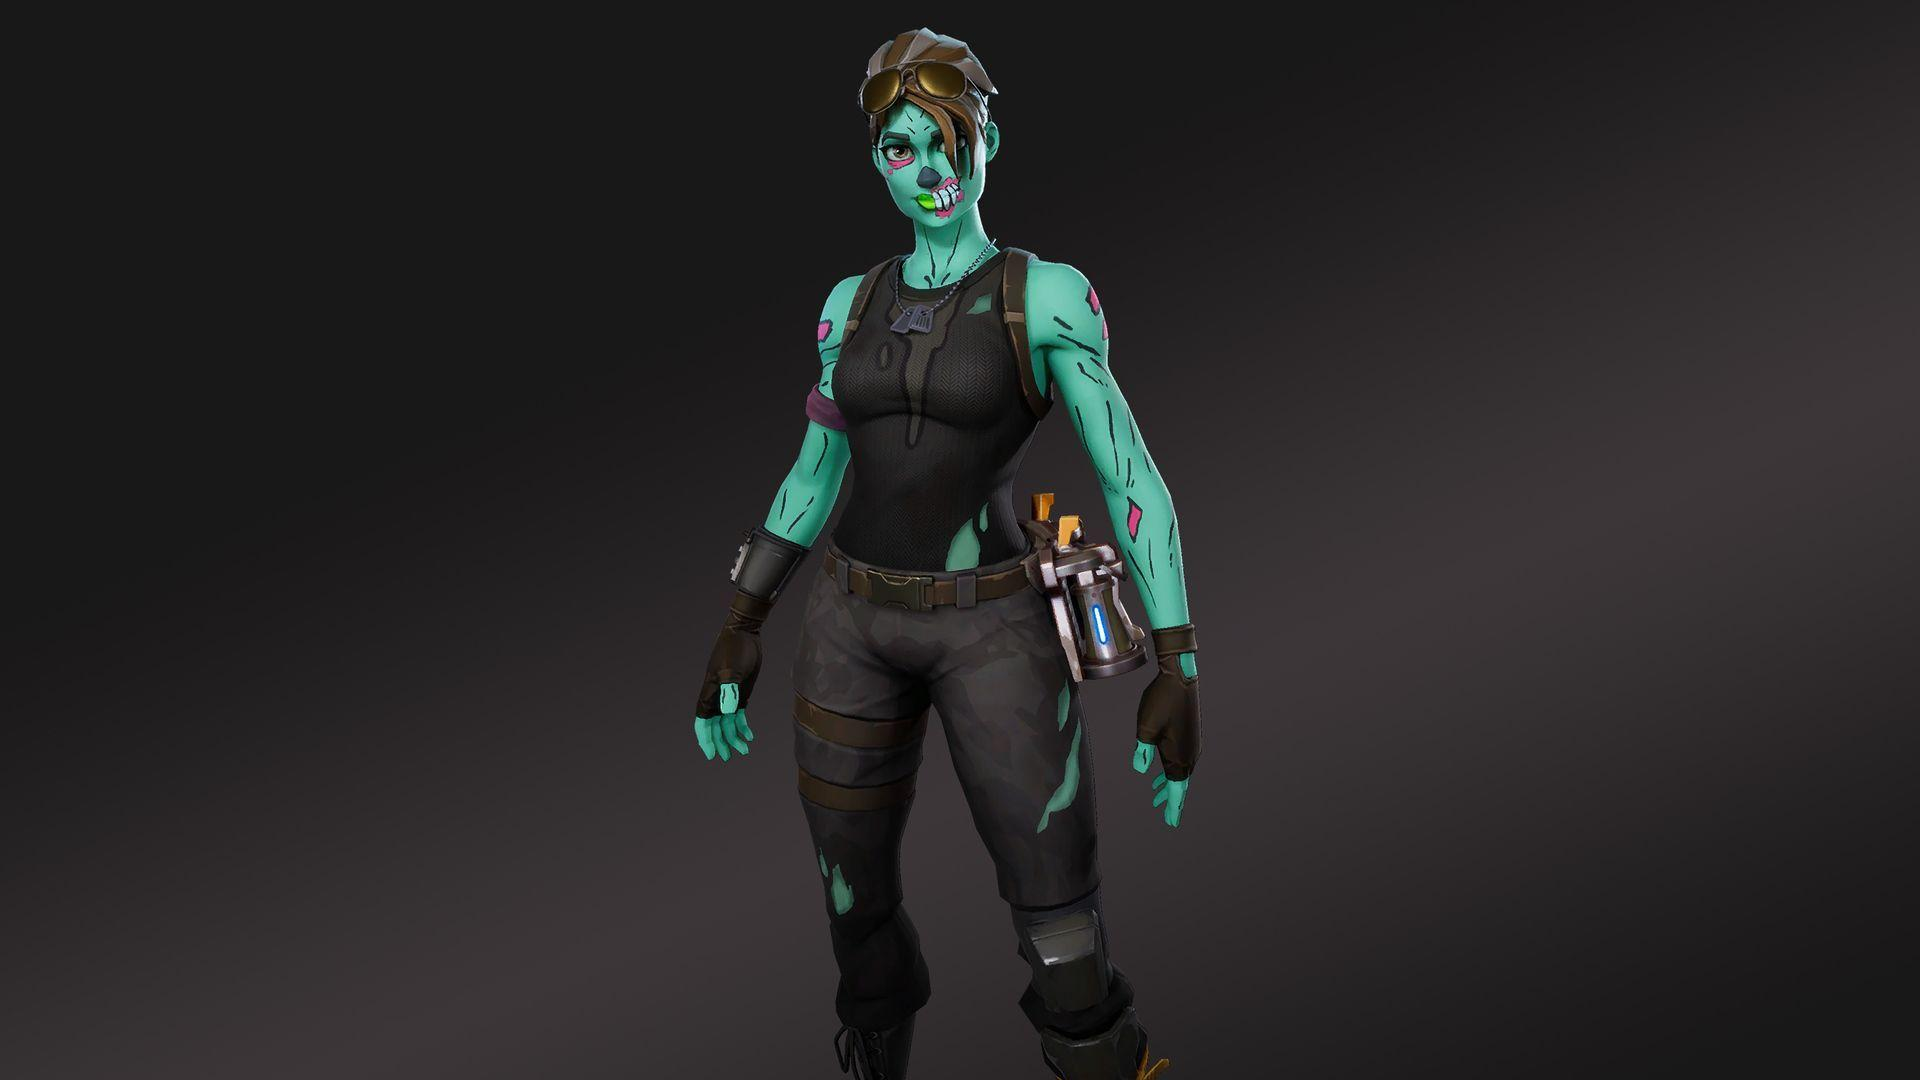 1920x1080 HD Wallpapers of Ghoul Trooper Fortnite Battle Royale Video